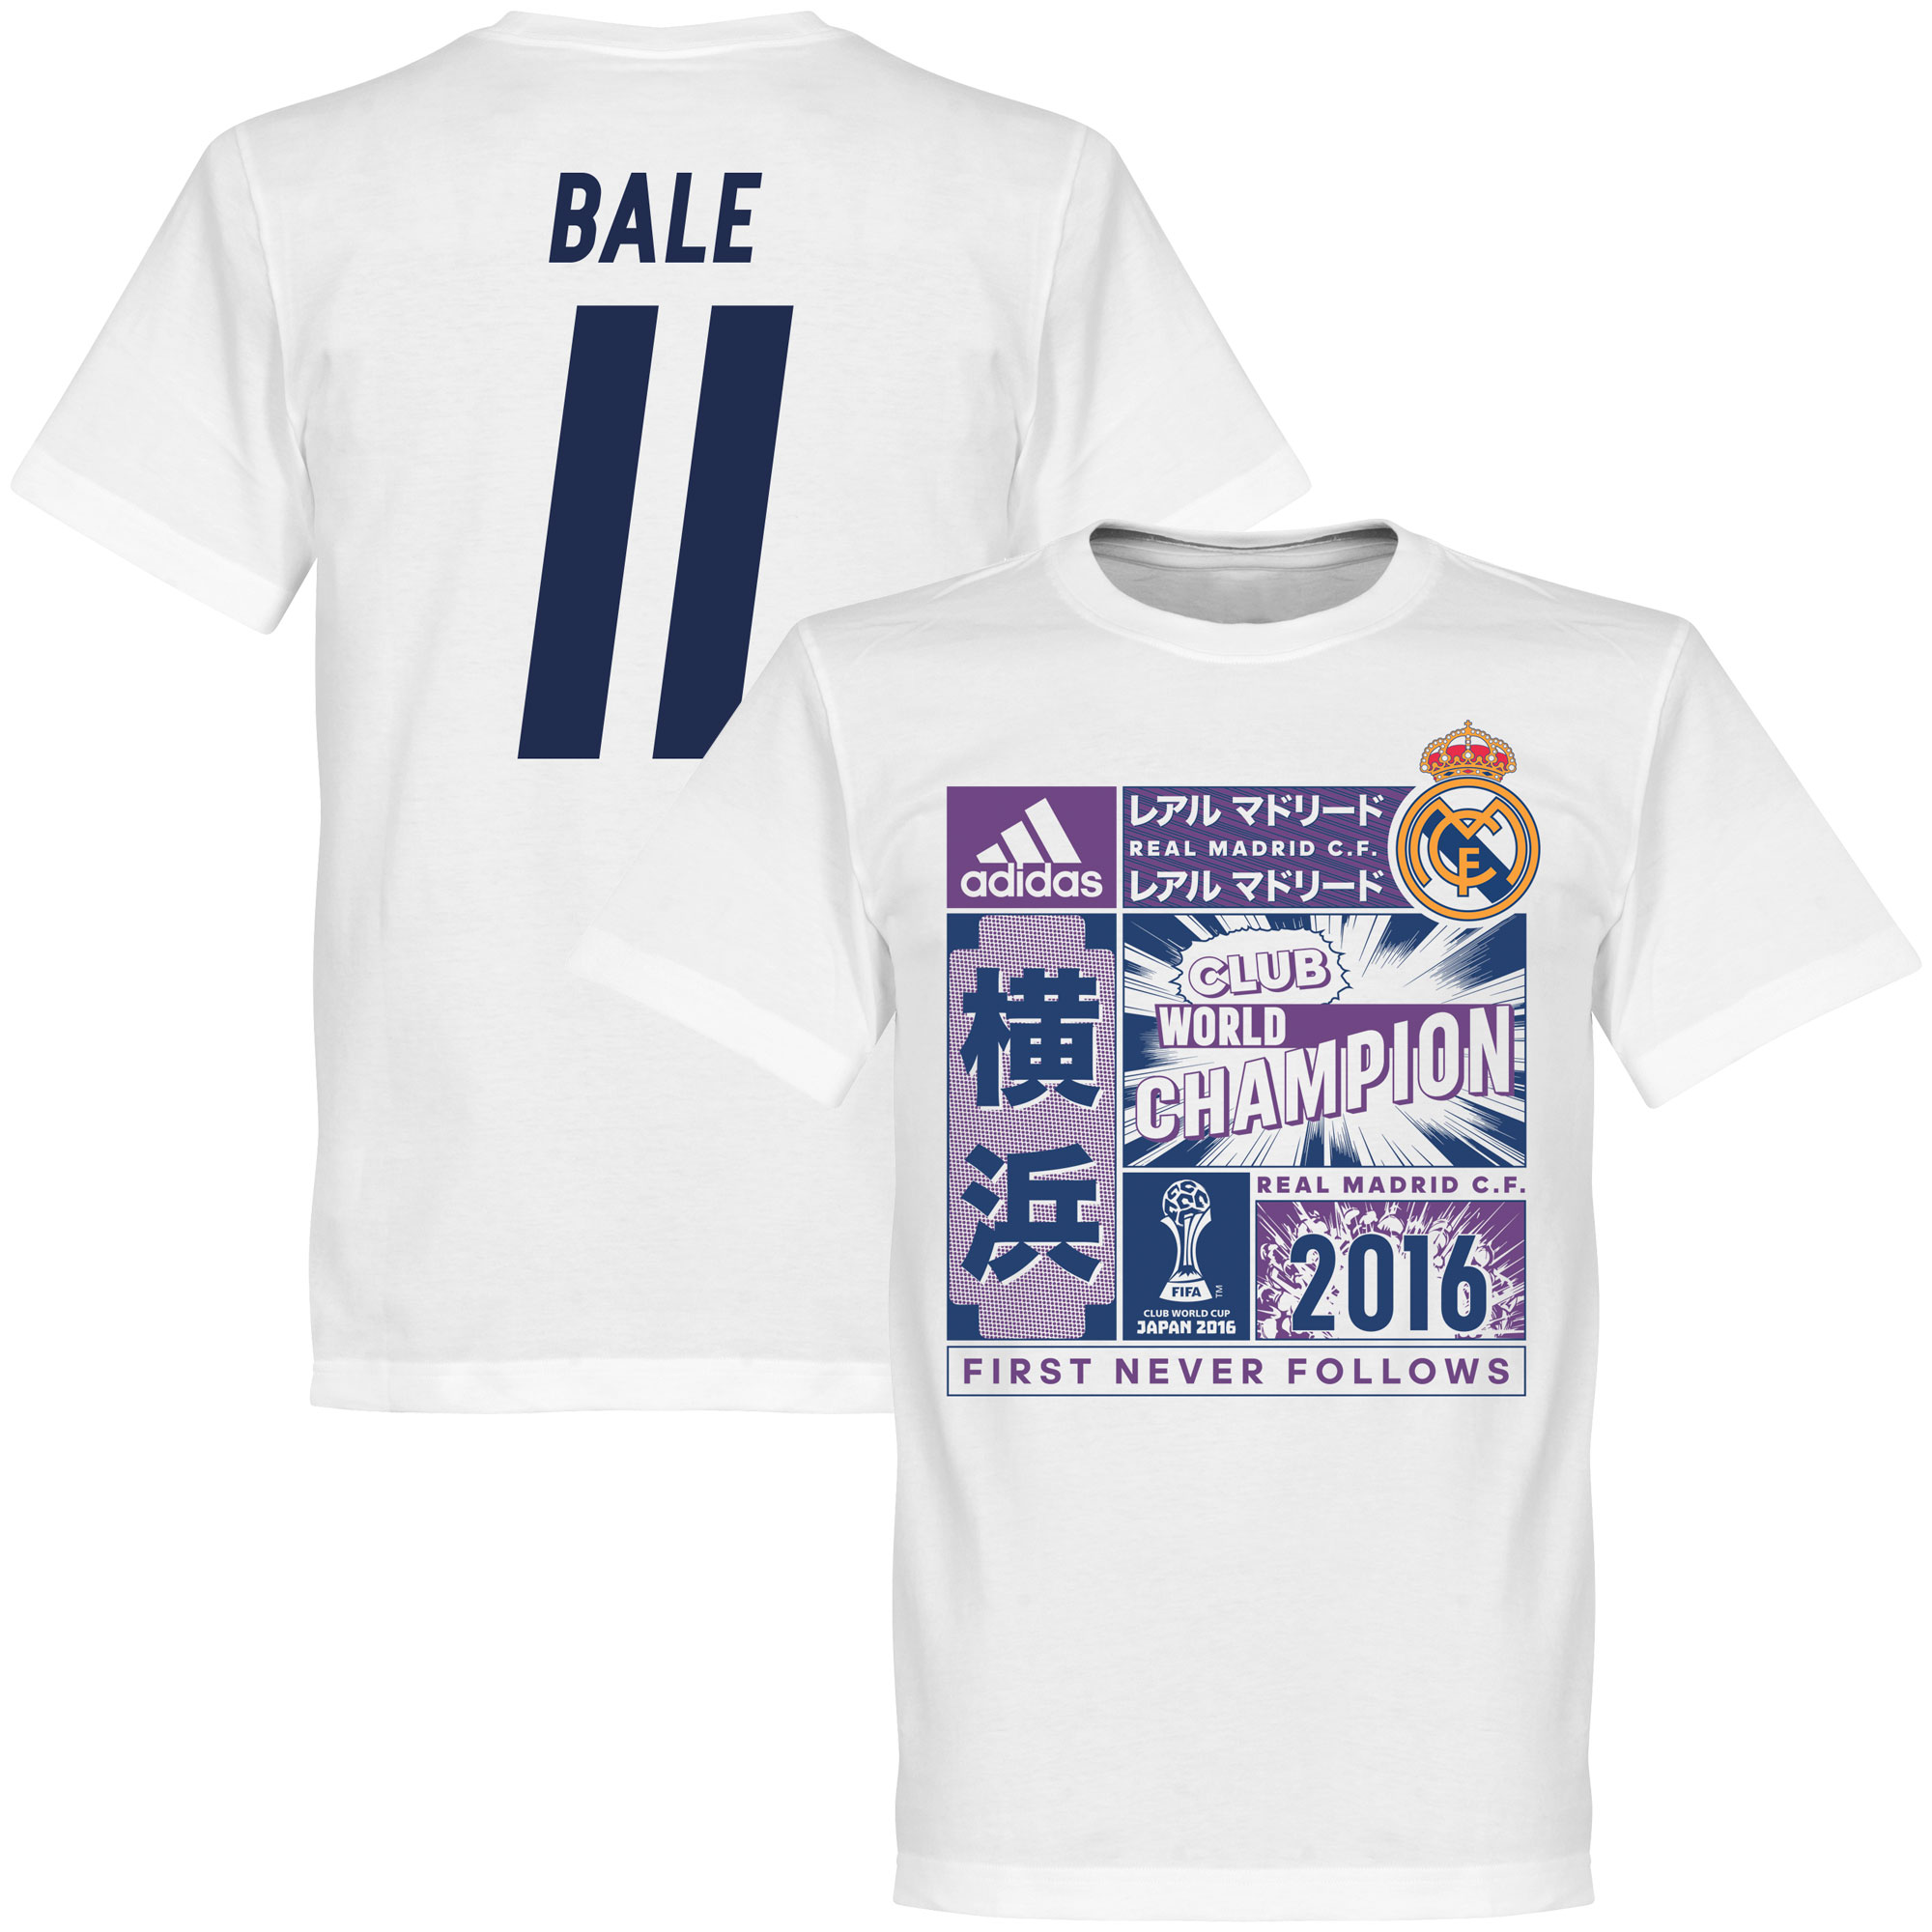 adidas Real Madrid 2016 Club World Cup Official Winners Tee + Bale 11 - 54